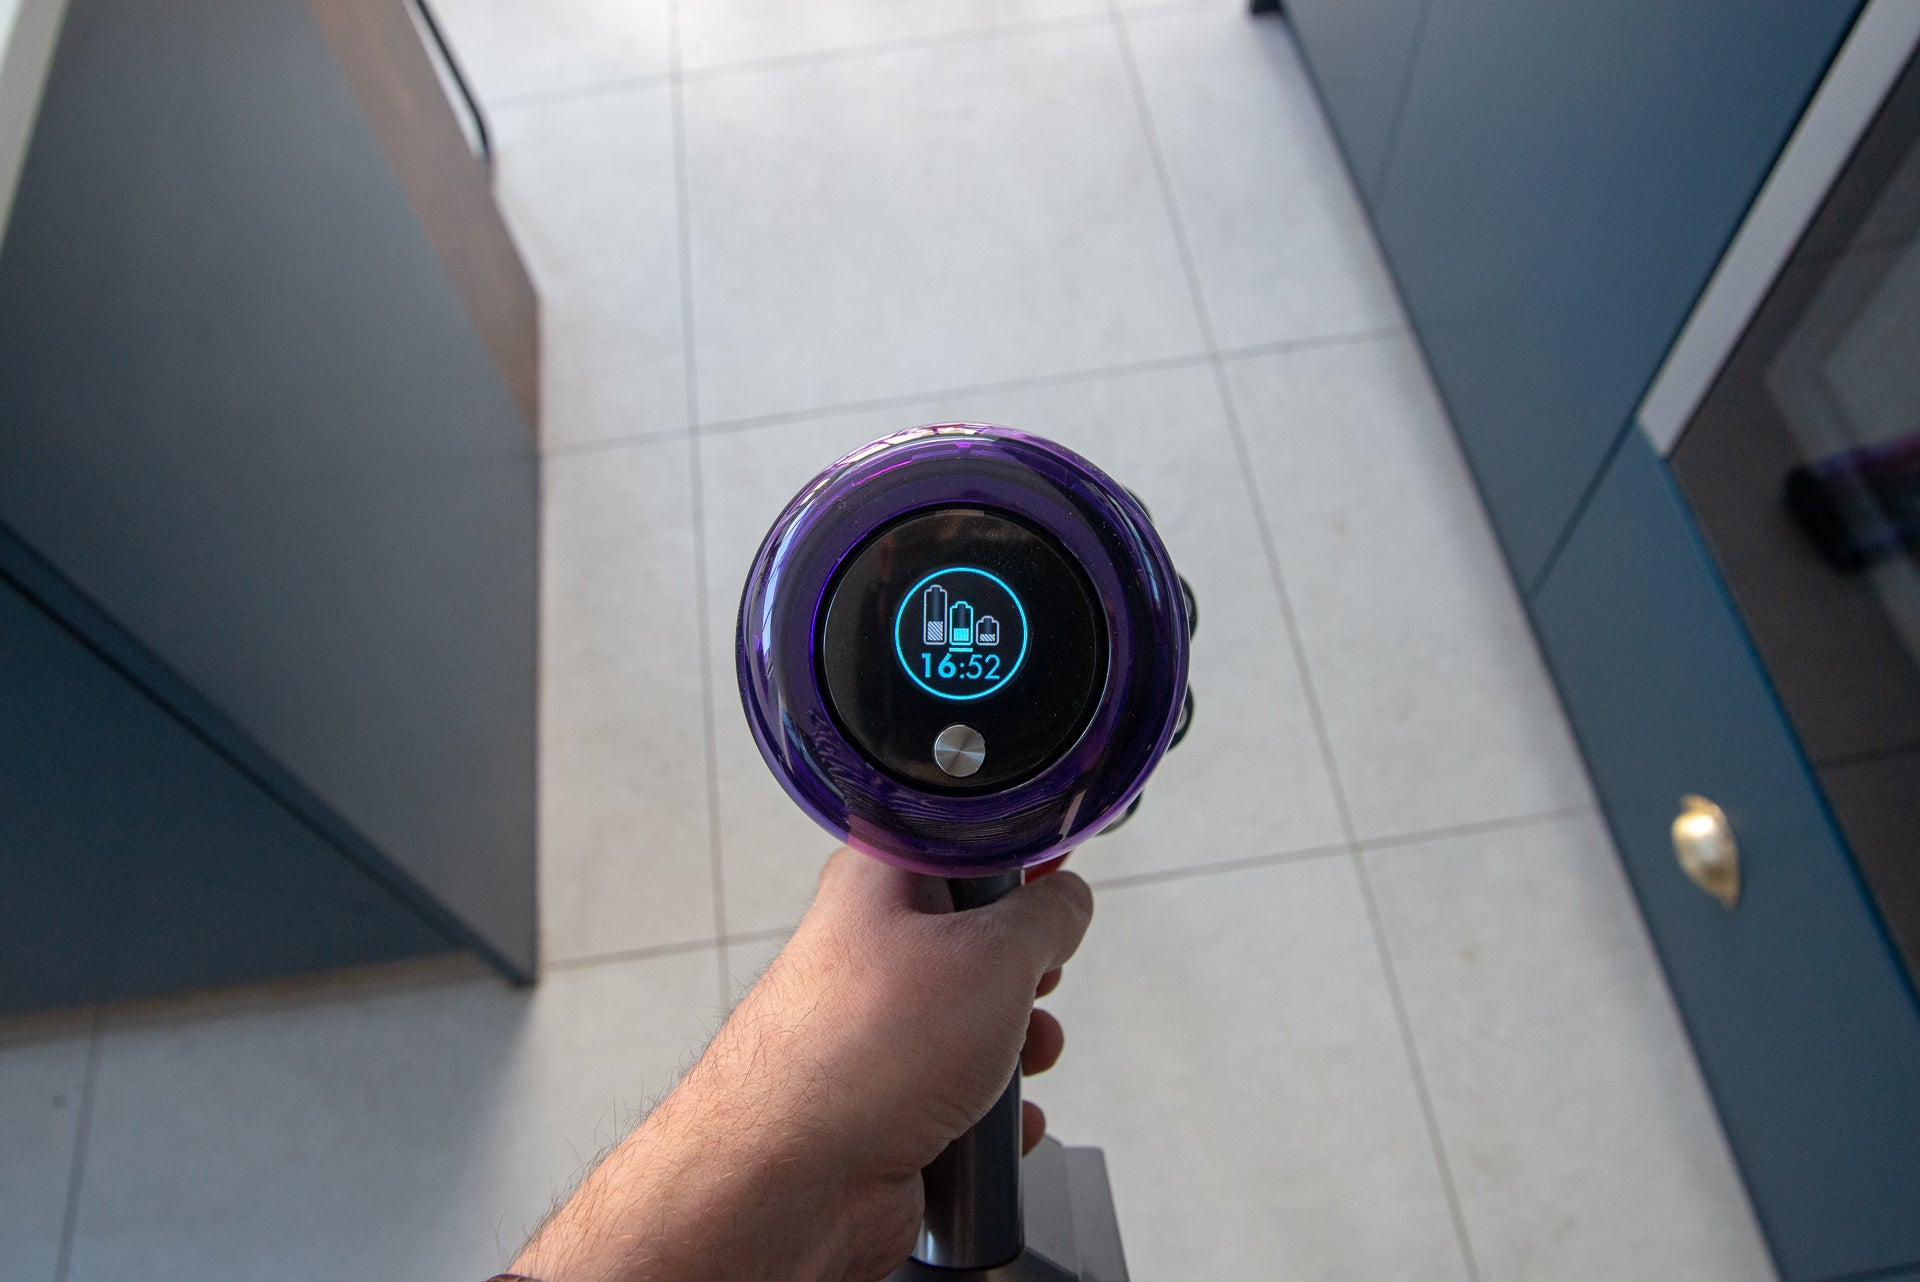 Dyson V11 Absolute run time remaining